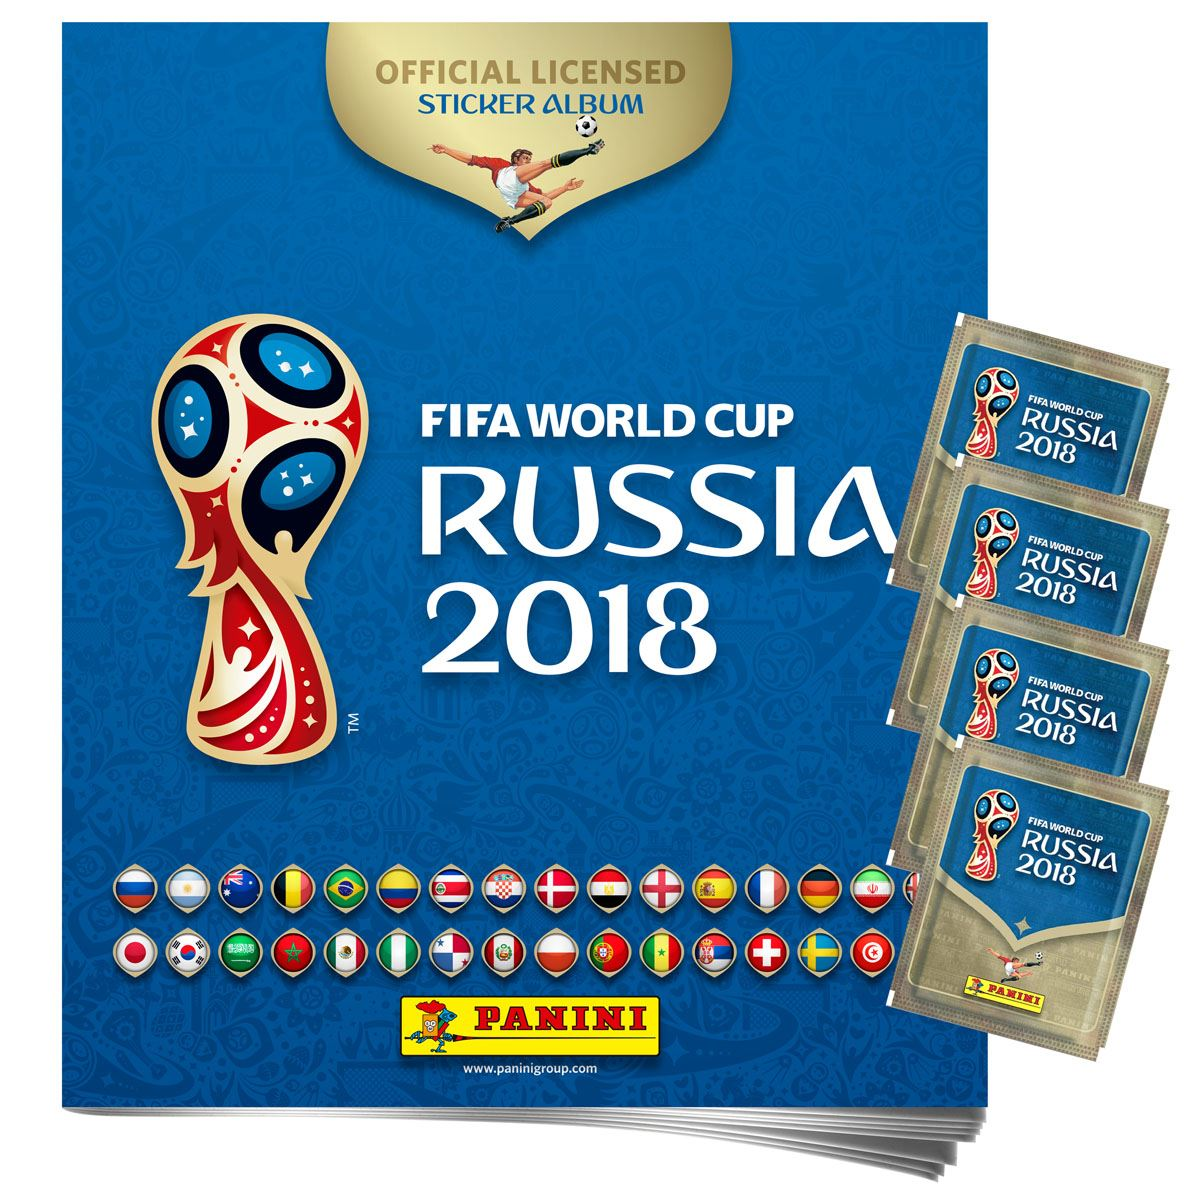 Panini Álbum 4s world cup 2018 Libro - Sanborns